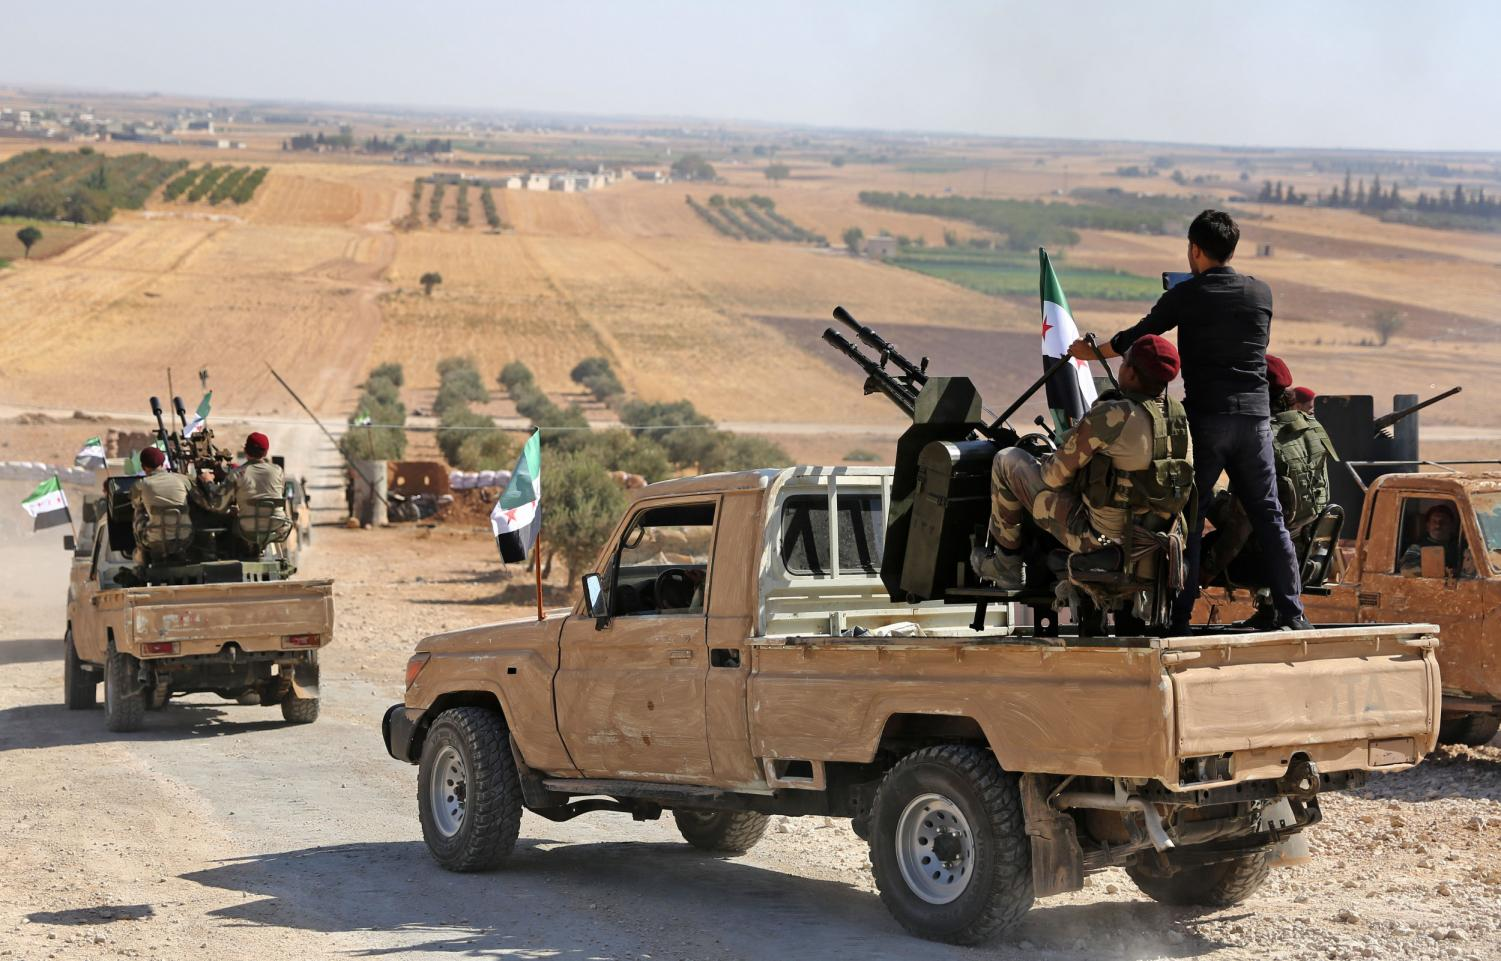 Syrian Rebels ride into the Syrian-Turkish border, backed by Turkey. On Oct. 9, Turkish Troops moved past the border into Syria.